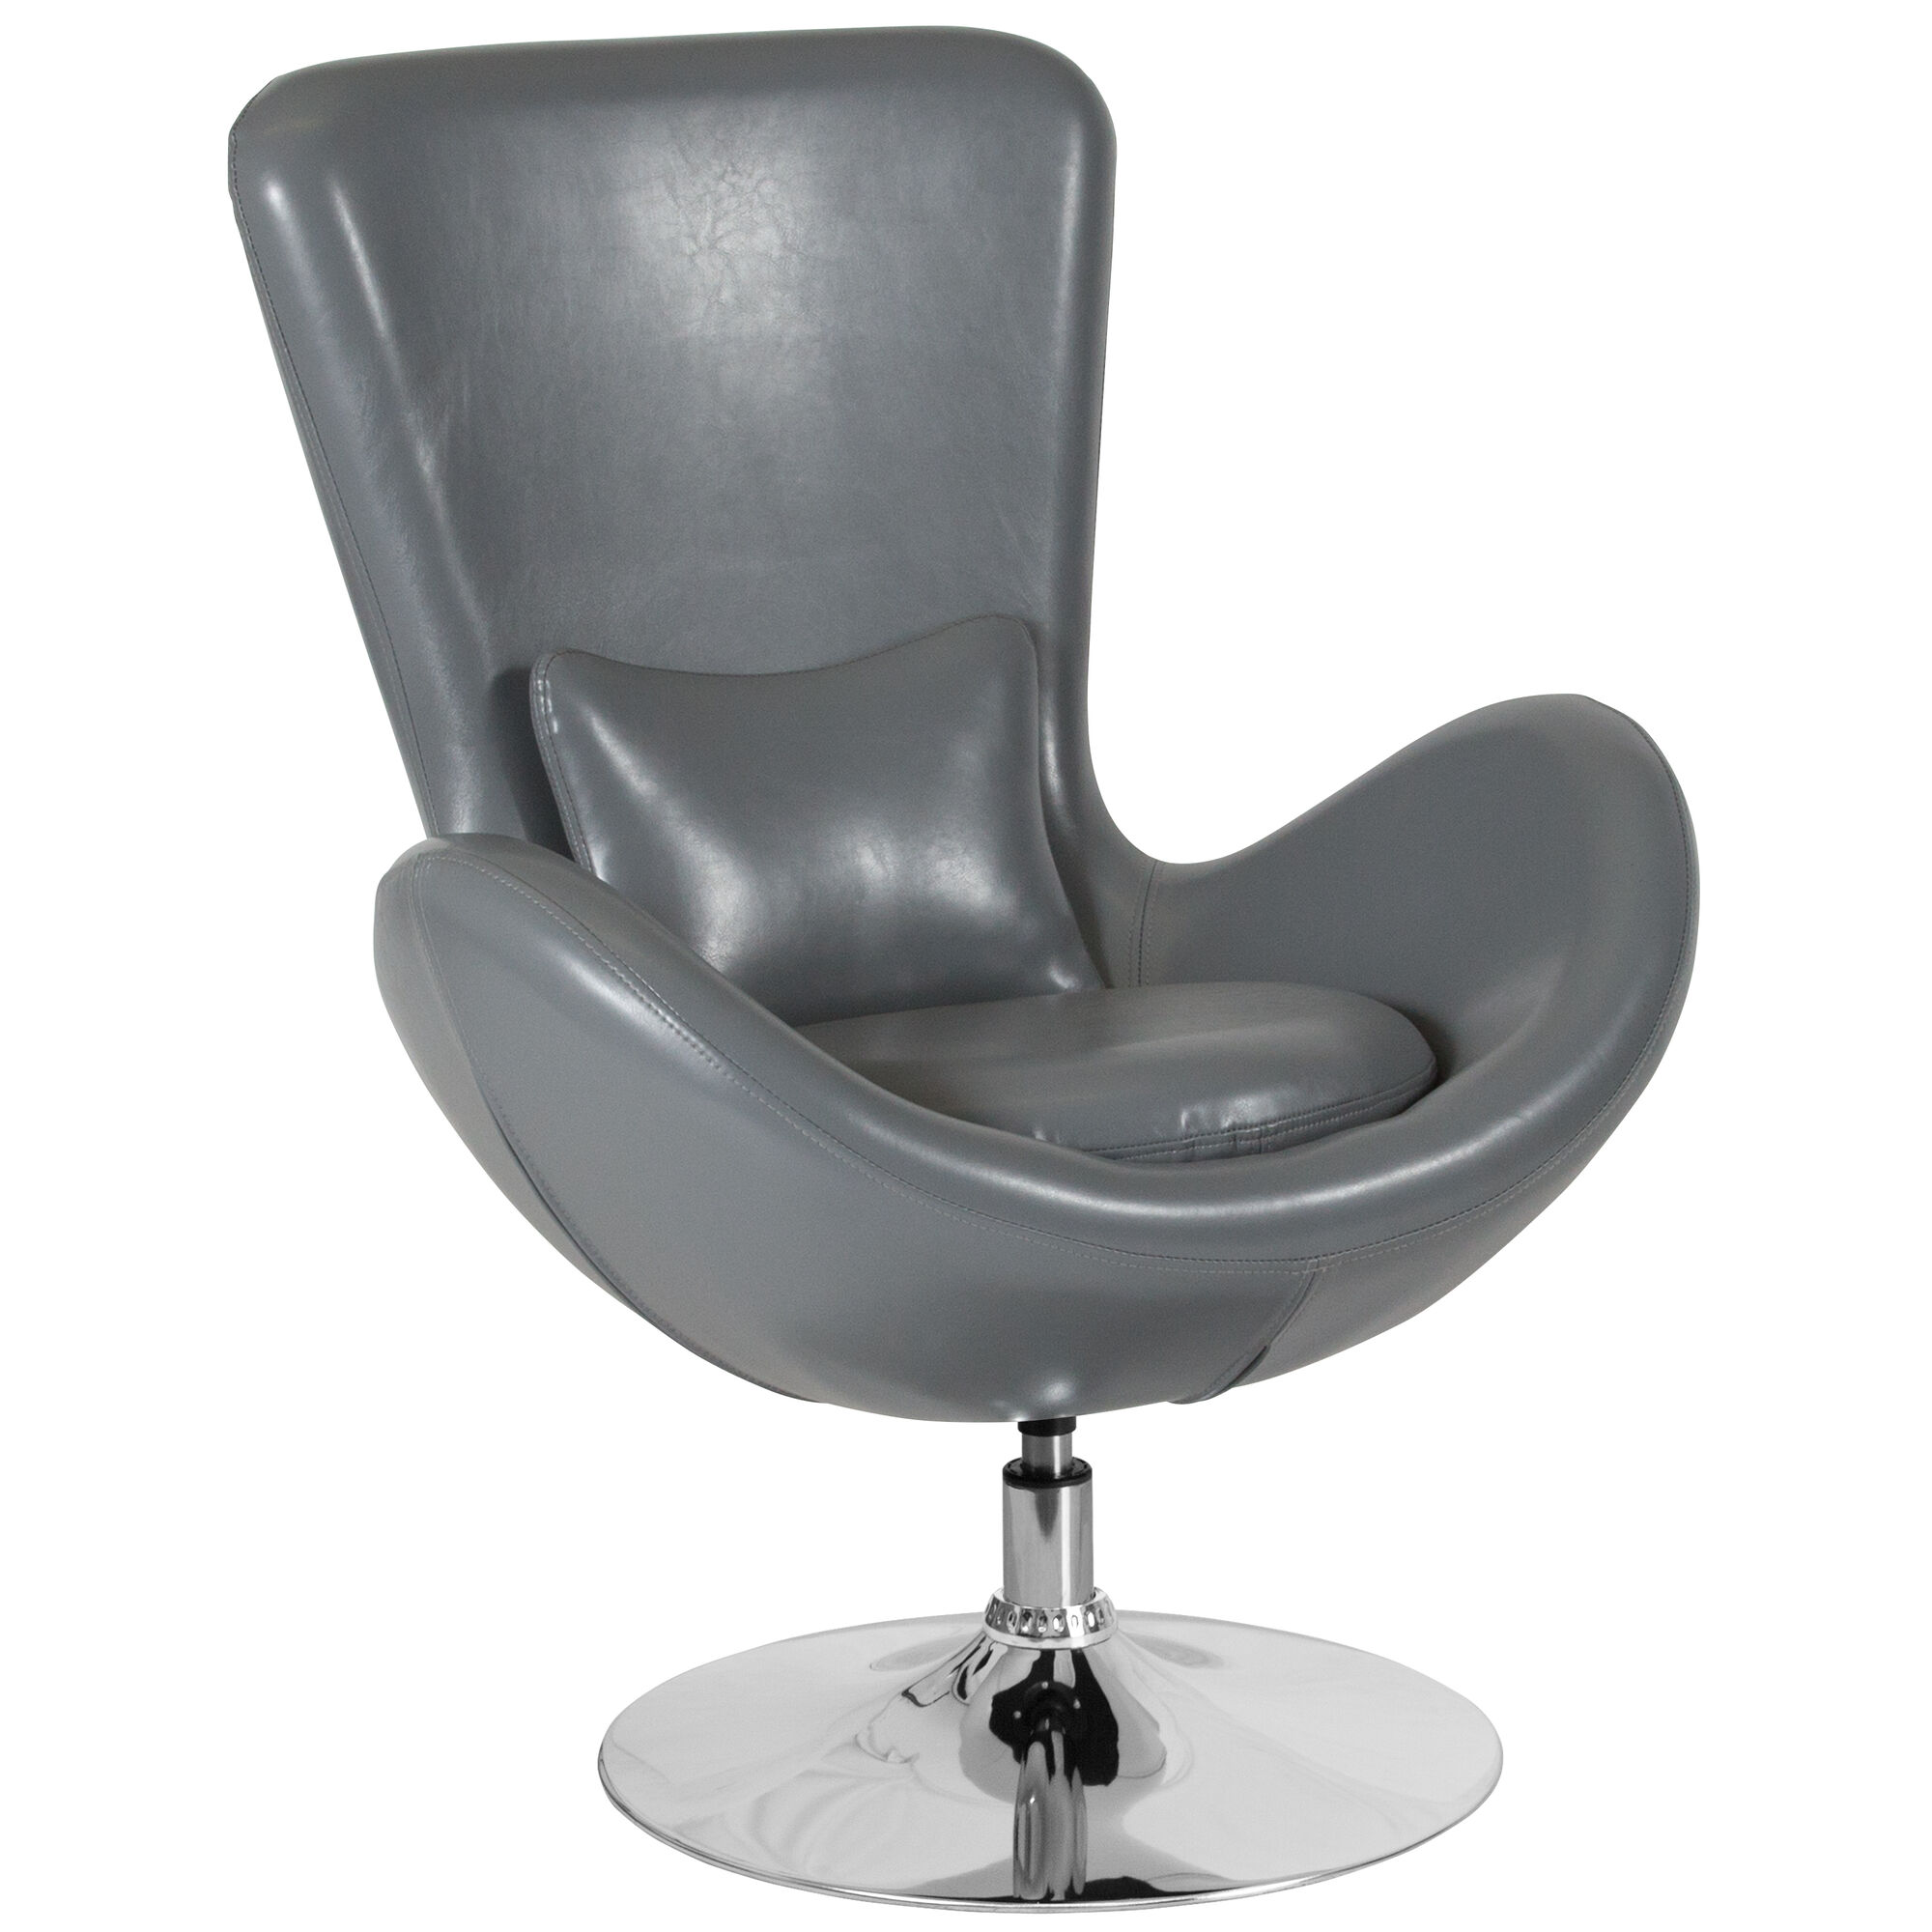 Gray leather egg series chair ch 162430 gy lea gg for Furniture 4 schools